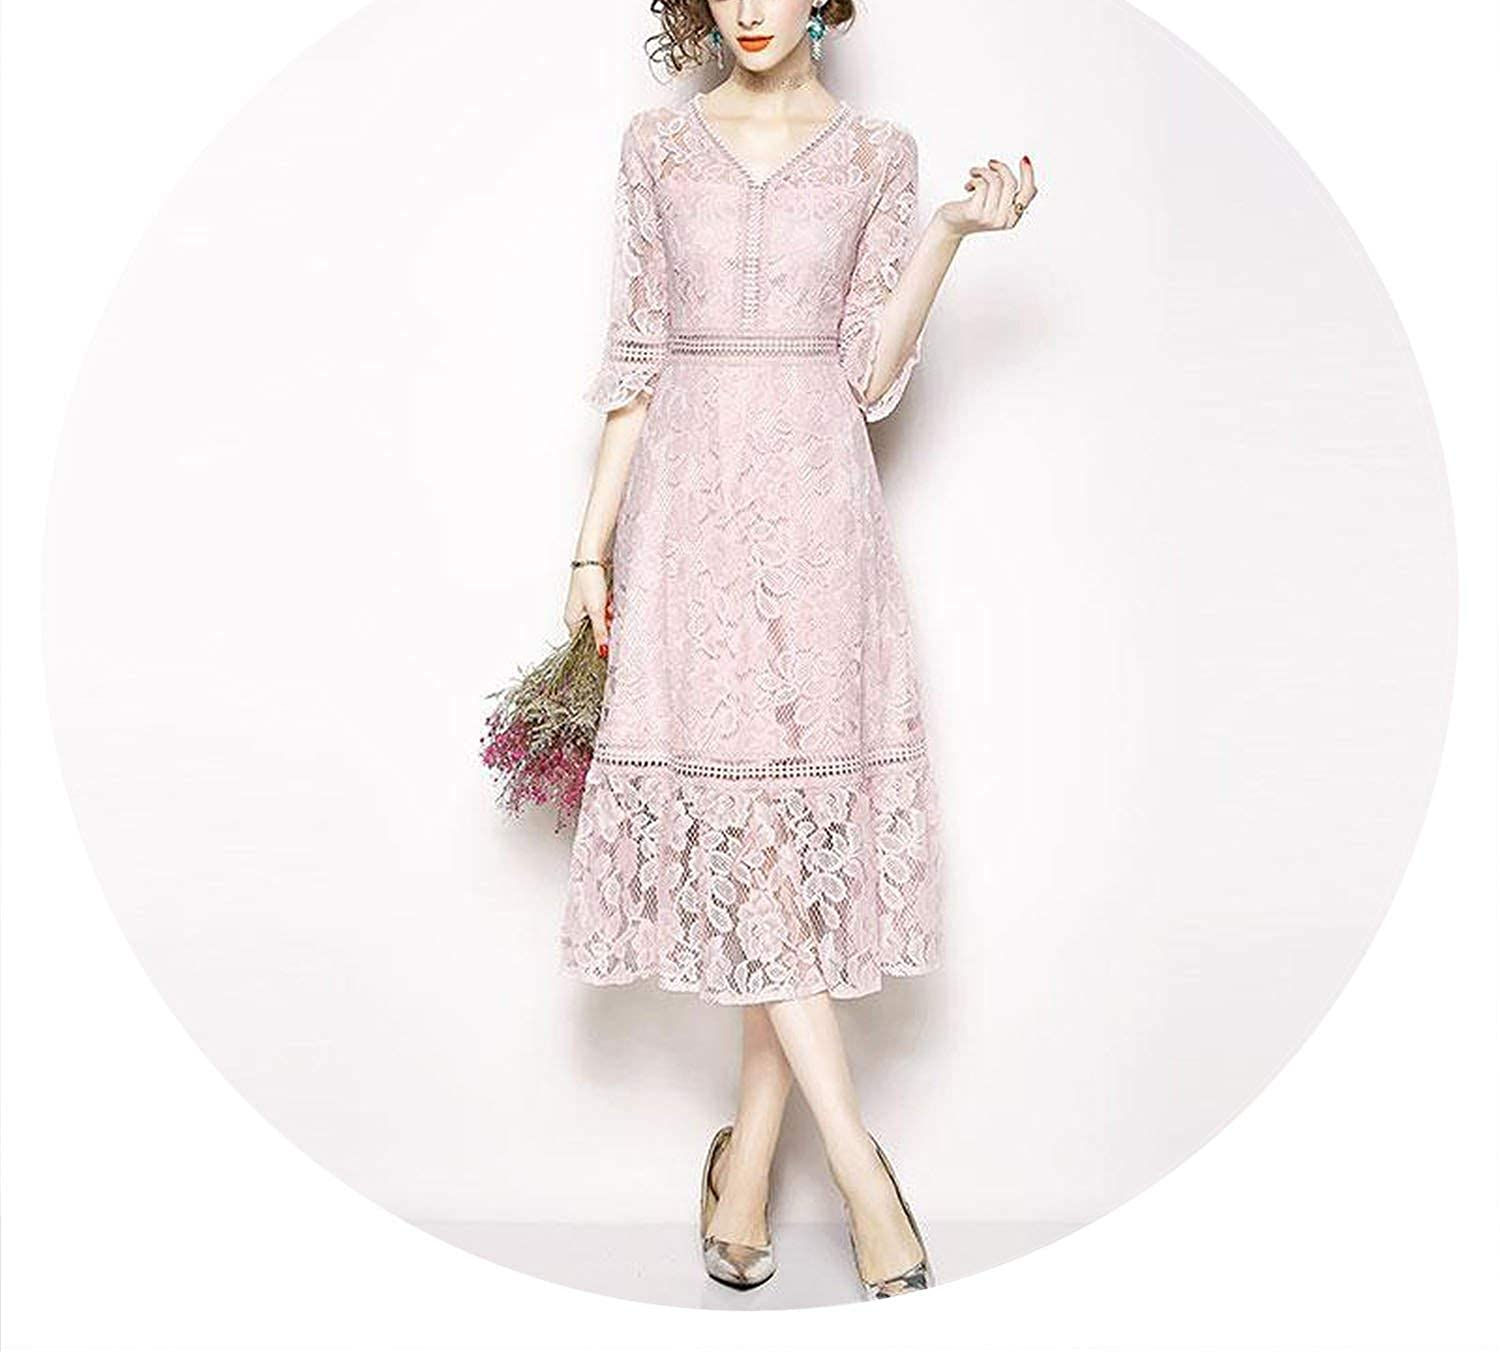 Brave pinkmary Luxury Lace Ladies Elegant Party Dress New 2019 Spring VNeck Flare Sleeve Women Casual Long Dresses N644